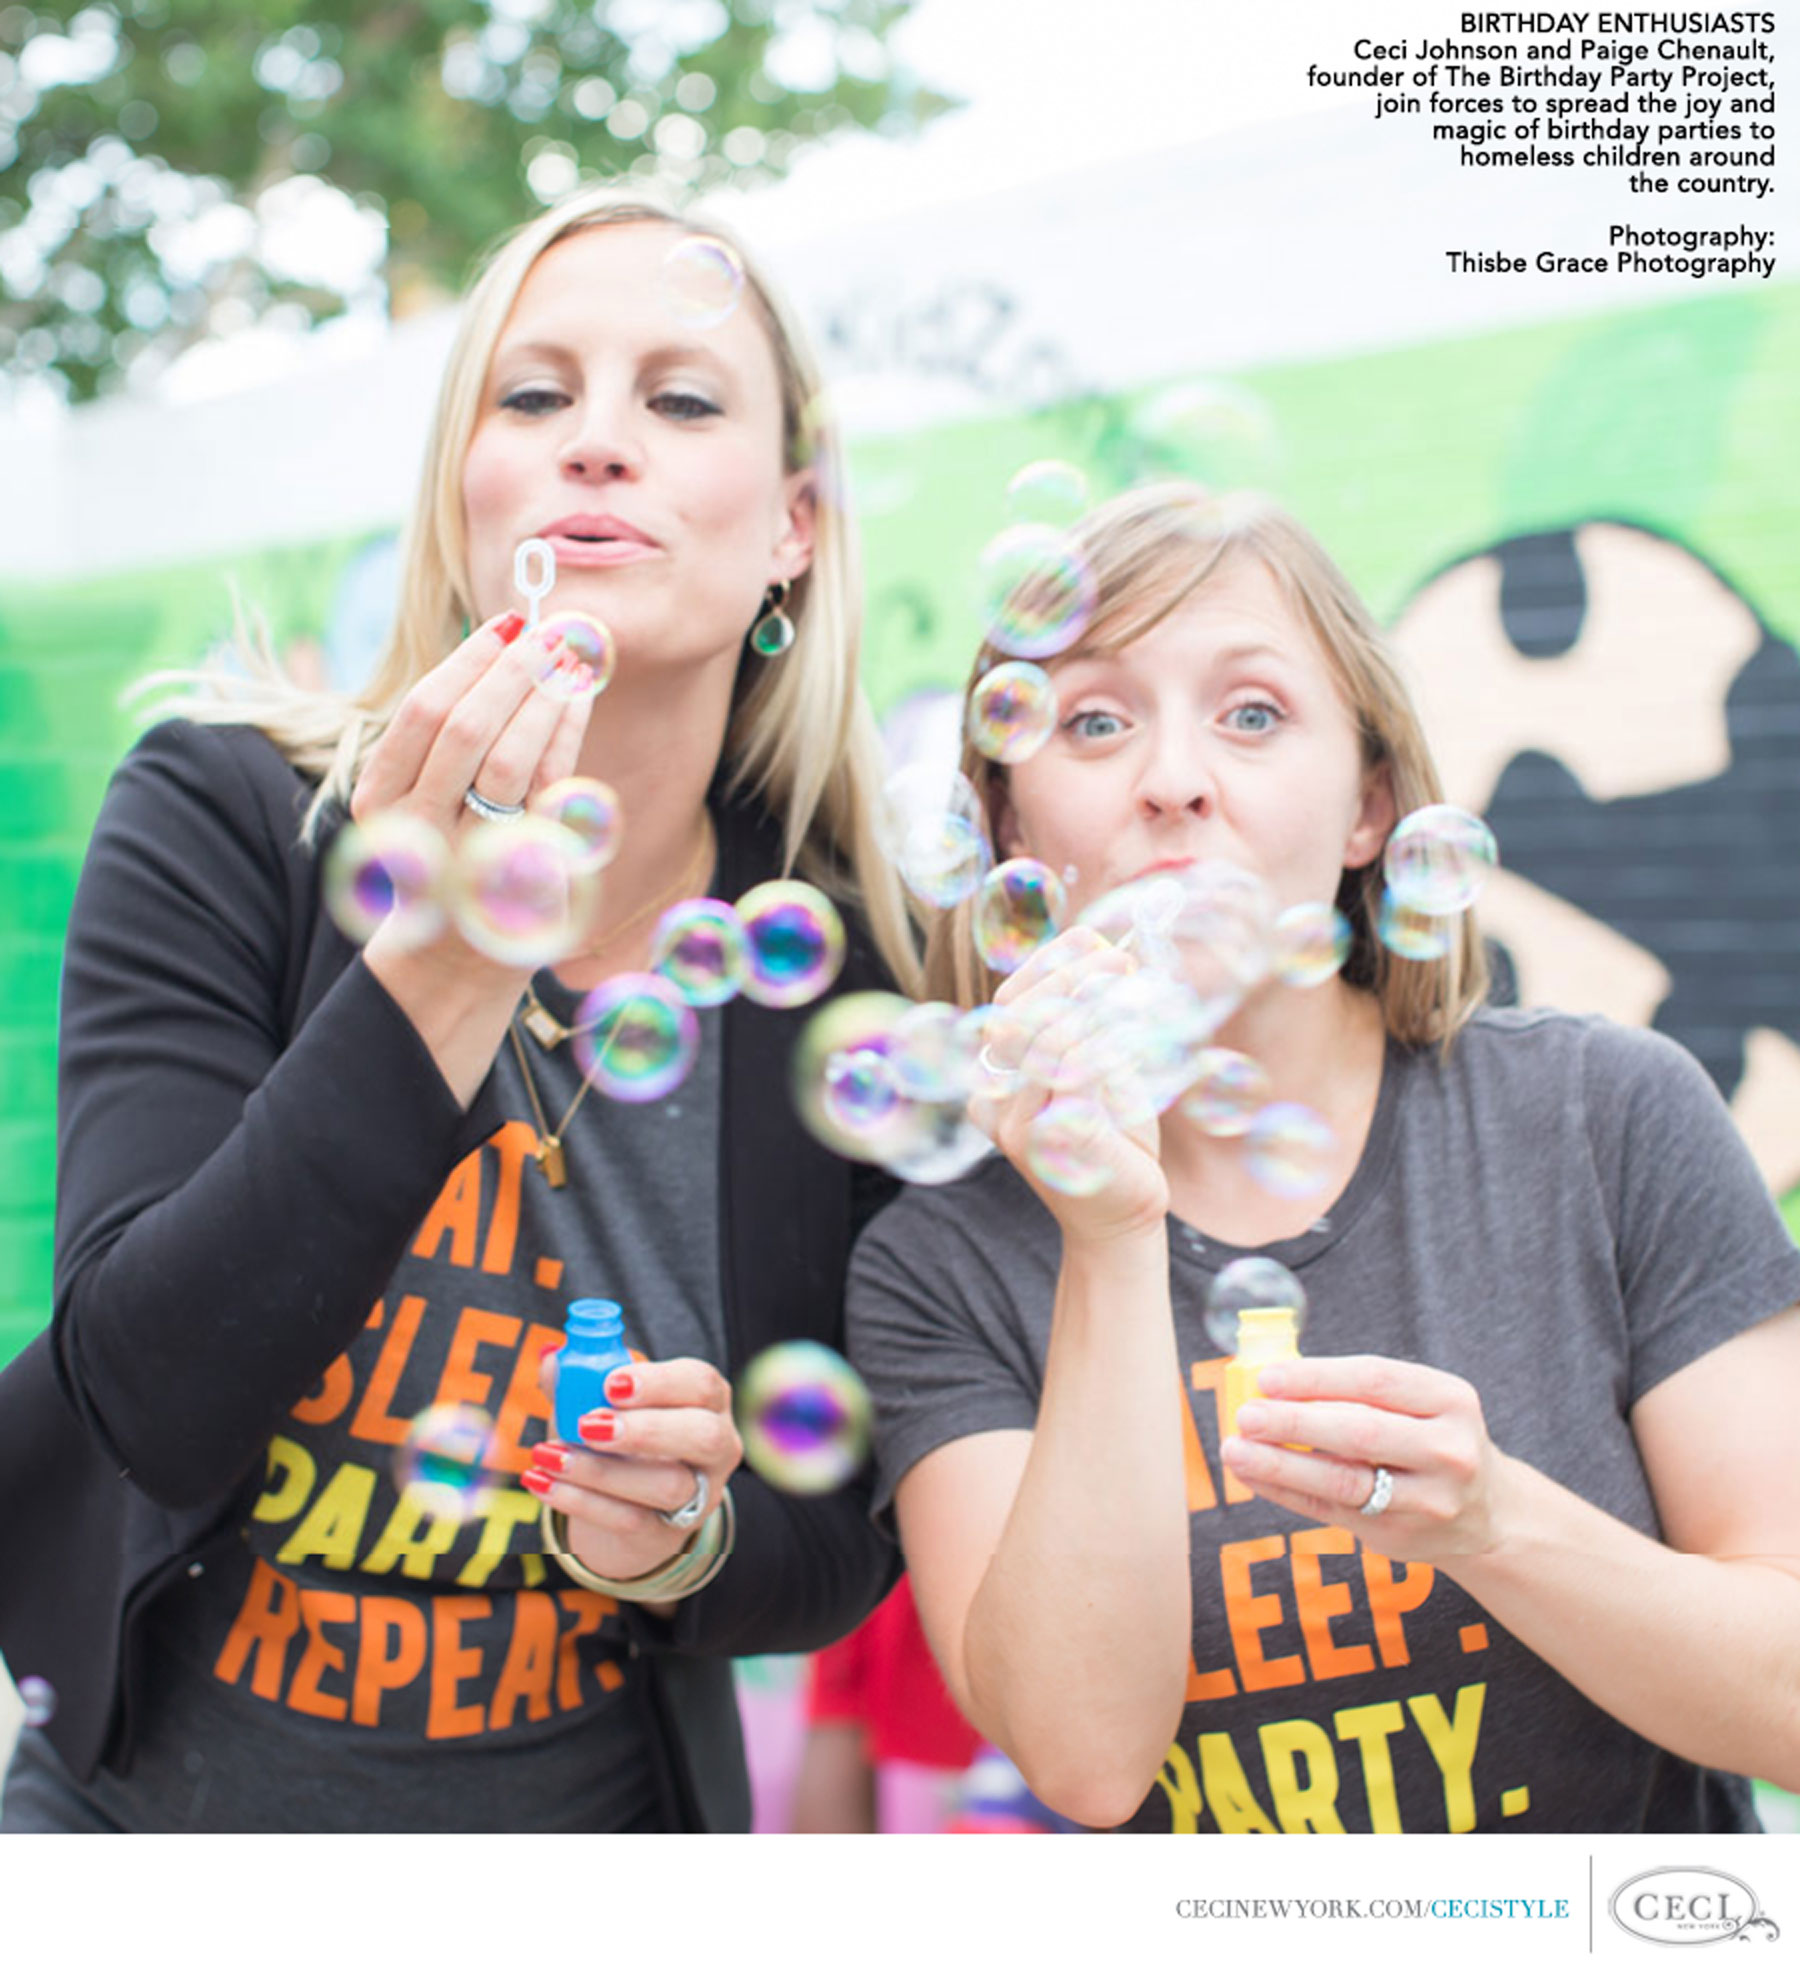 Ceci Johnson of Ceci New York - Birthday Enthusiasts - Ceci Johnson and Paige Chenault, founder of The Birthday Party Project, join forces to spread the joy and magic of birthday parties to homeless children around the country. Photography: Thisbey Grace Photography